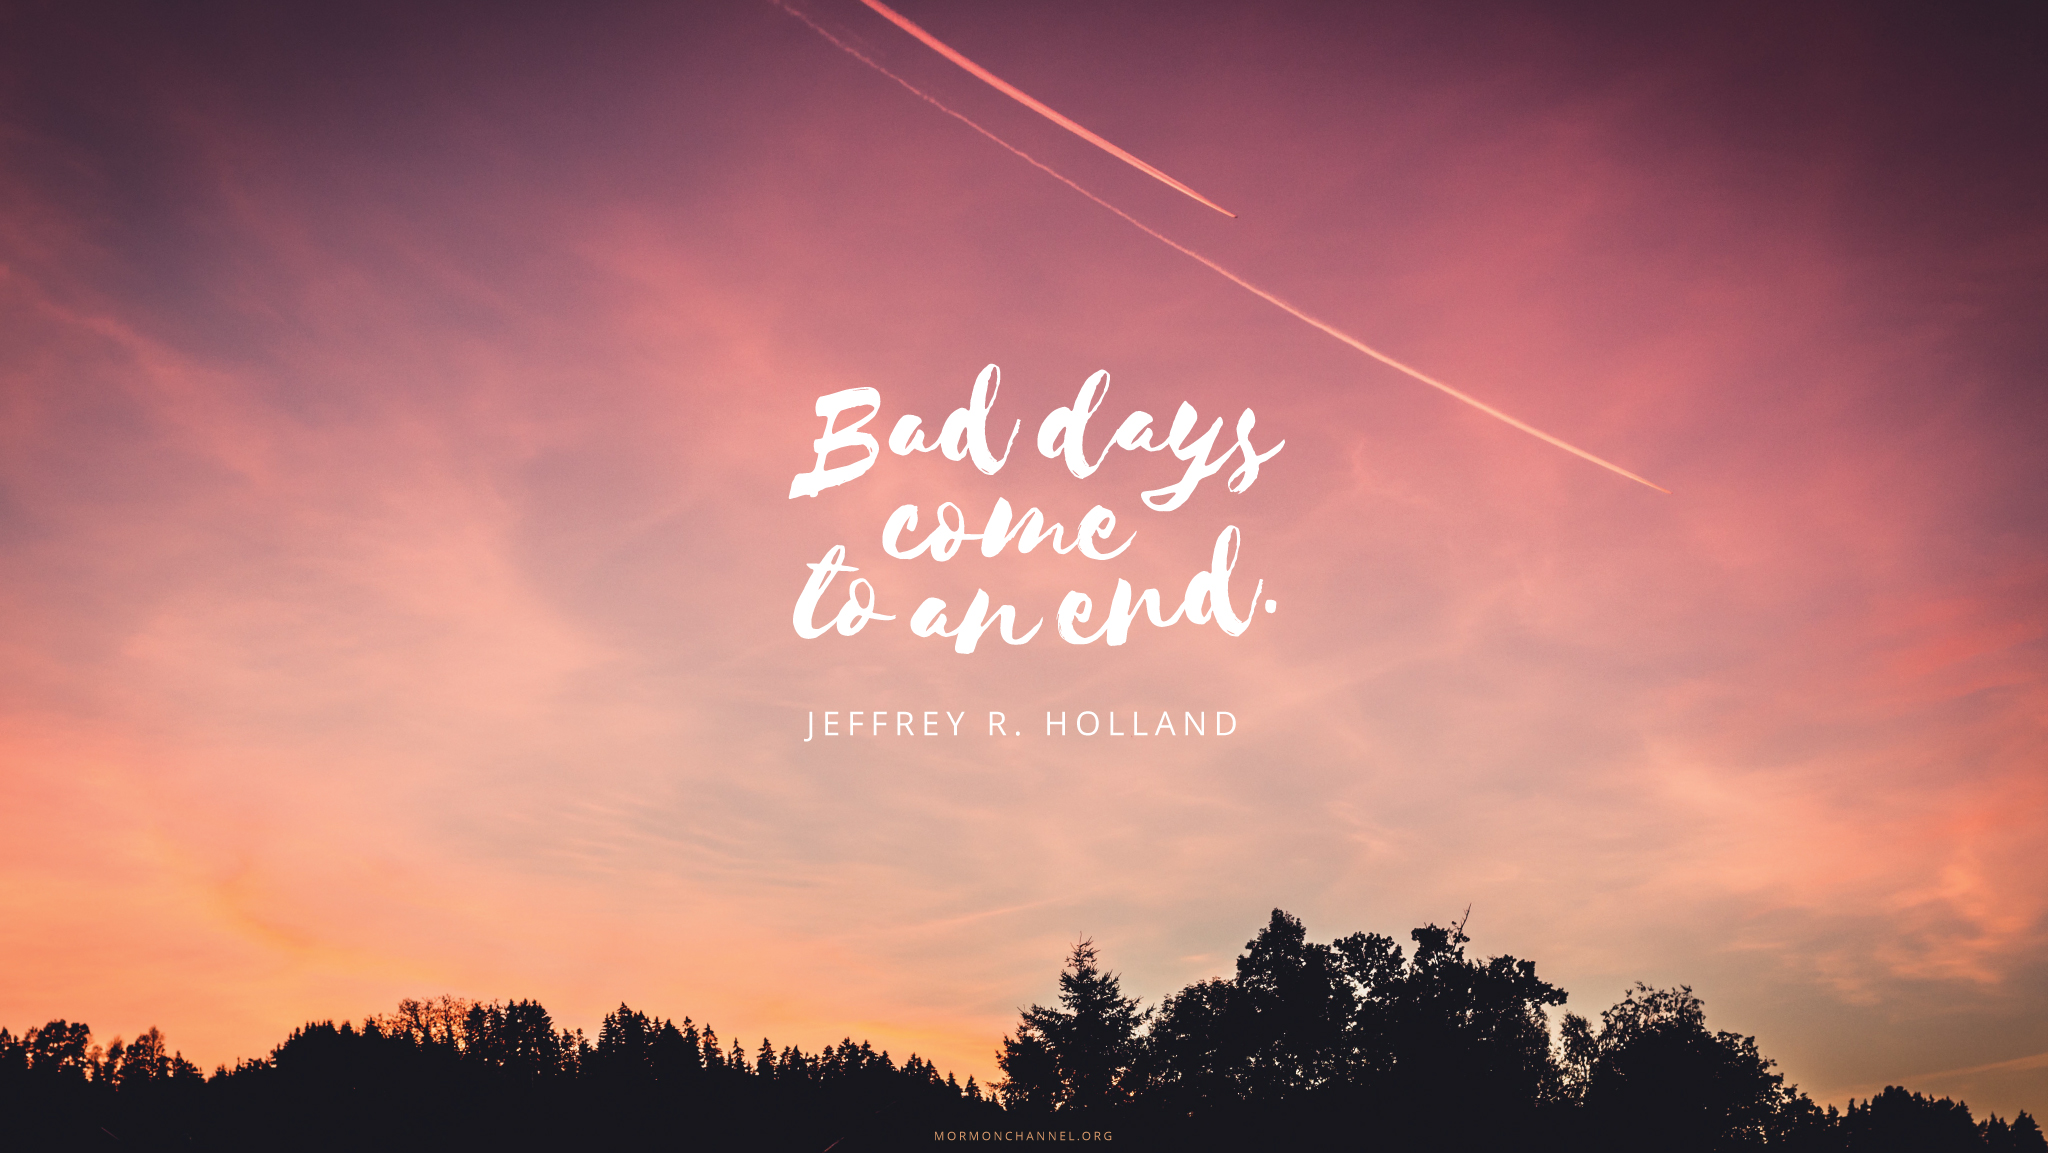 End Quotes Daily Quote Bad Days Come To An End  Mormon Channel